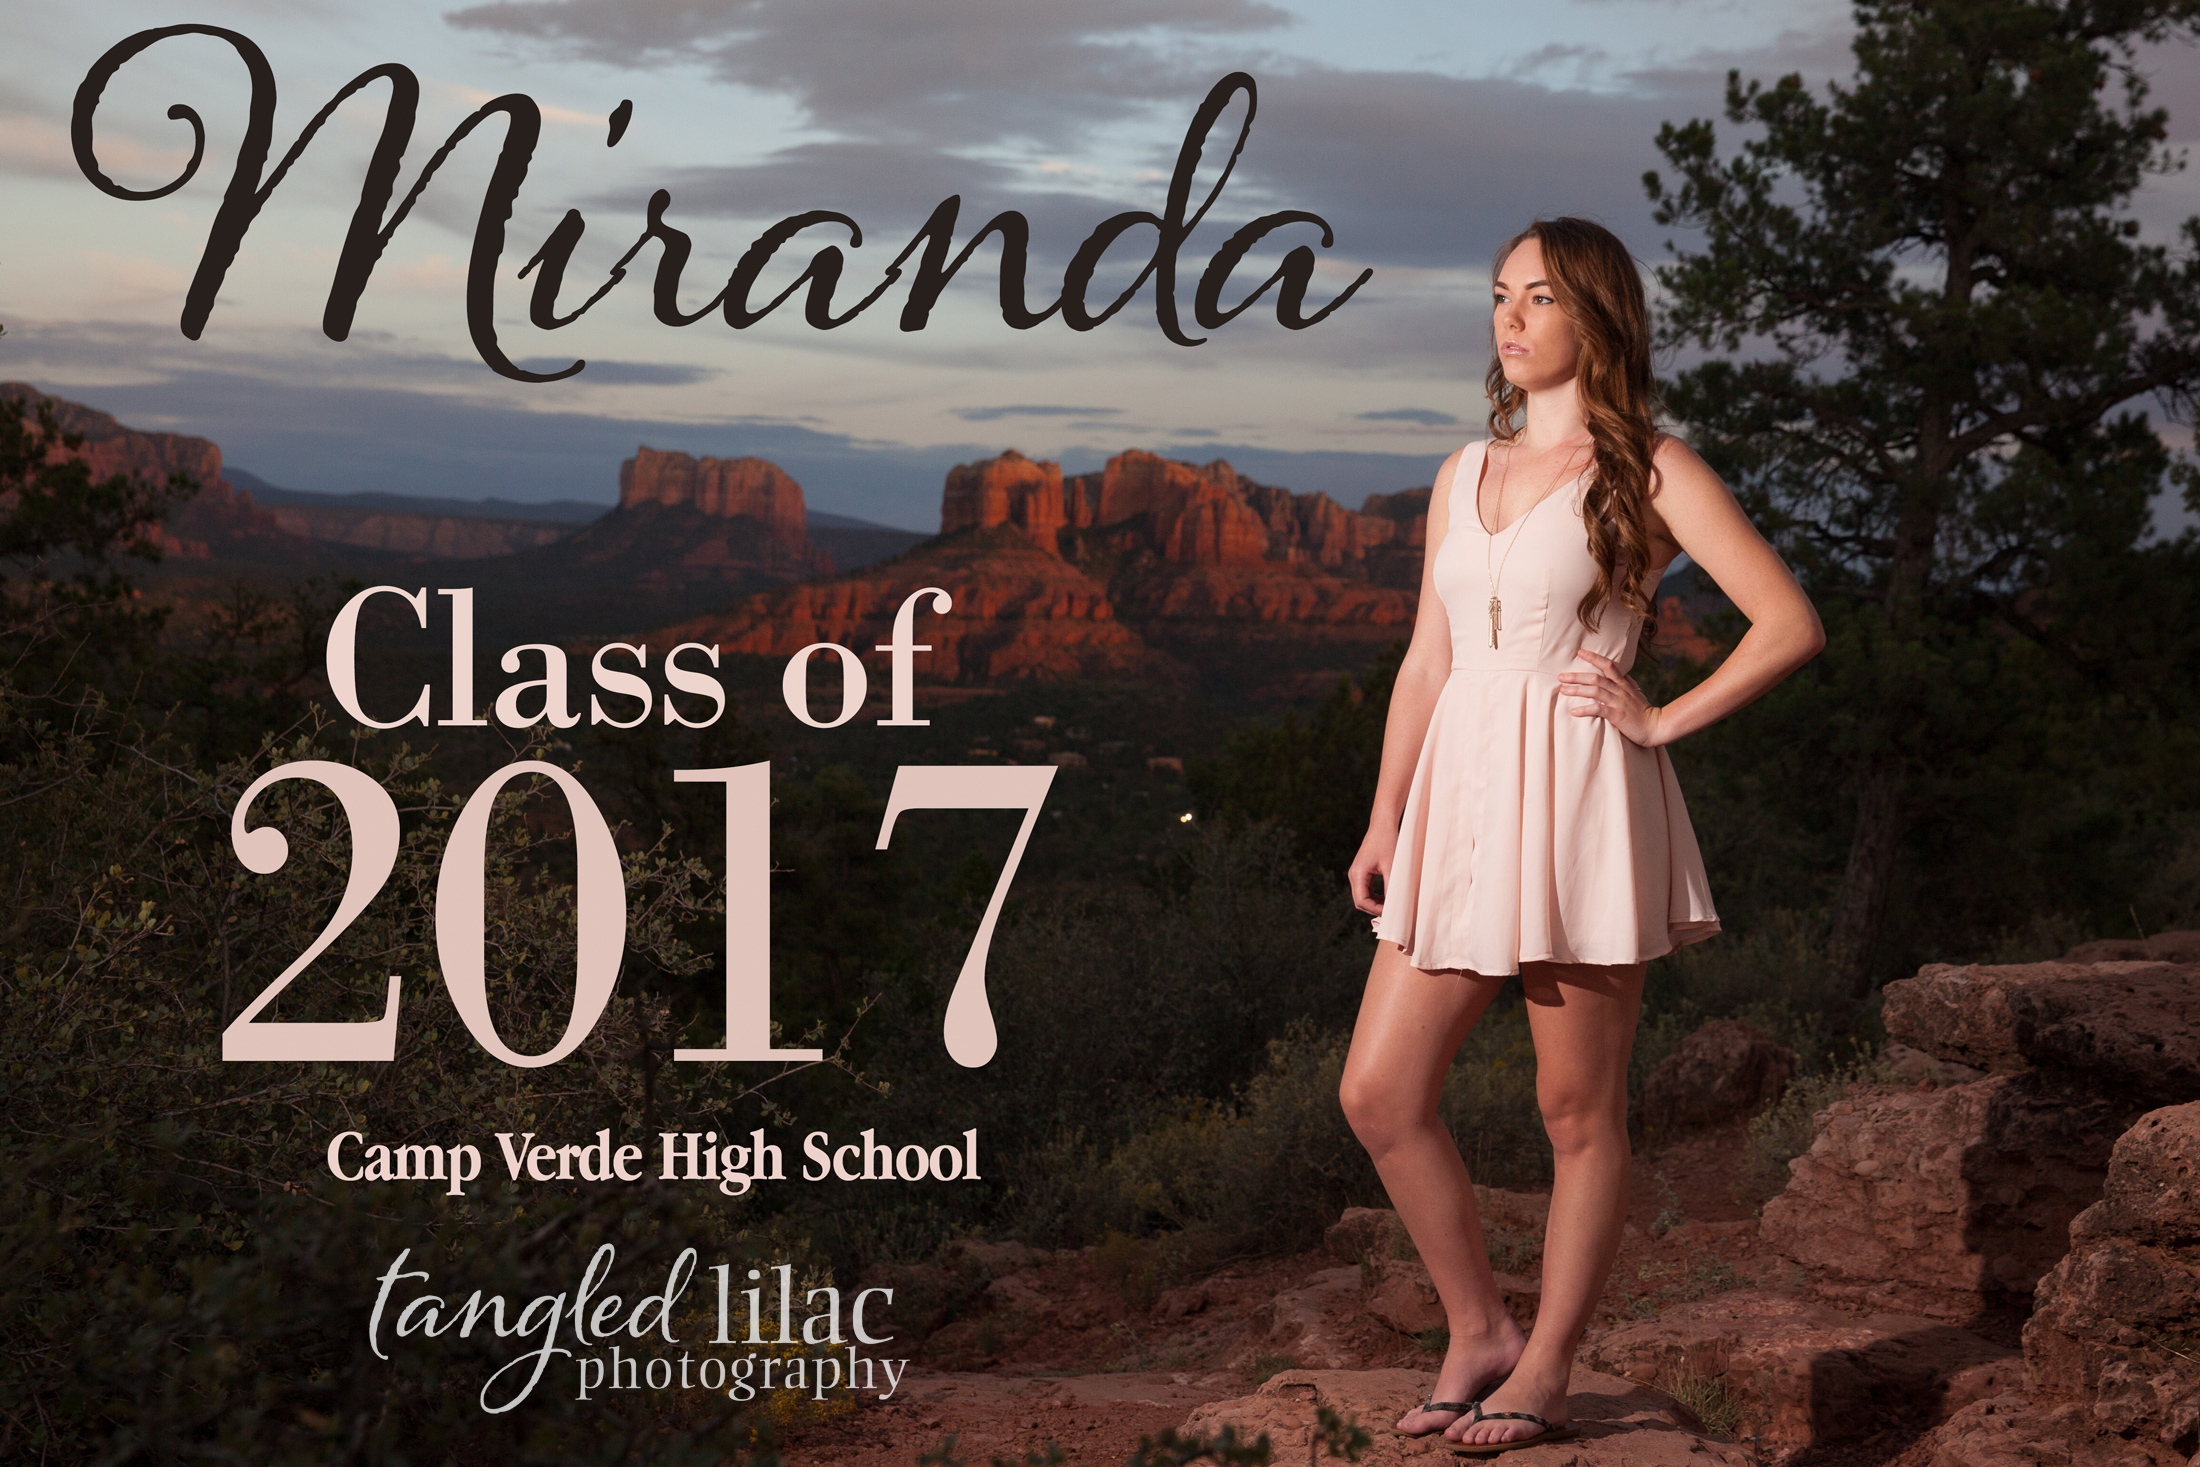 098-sedona-high-school-senior-camp-verde-flagstaff